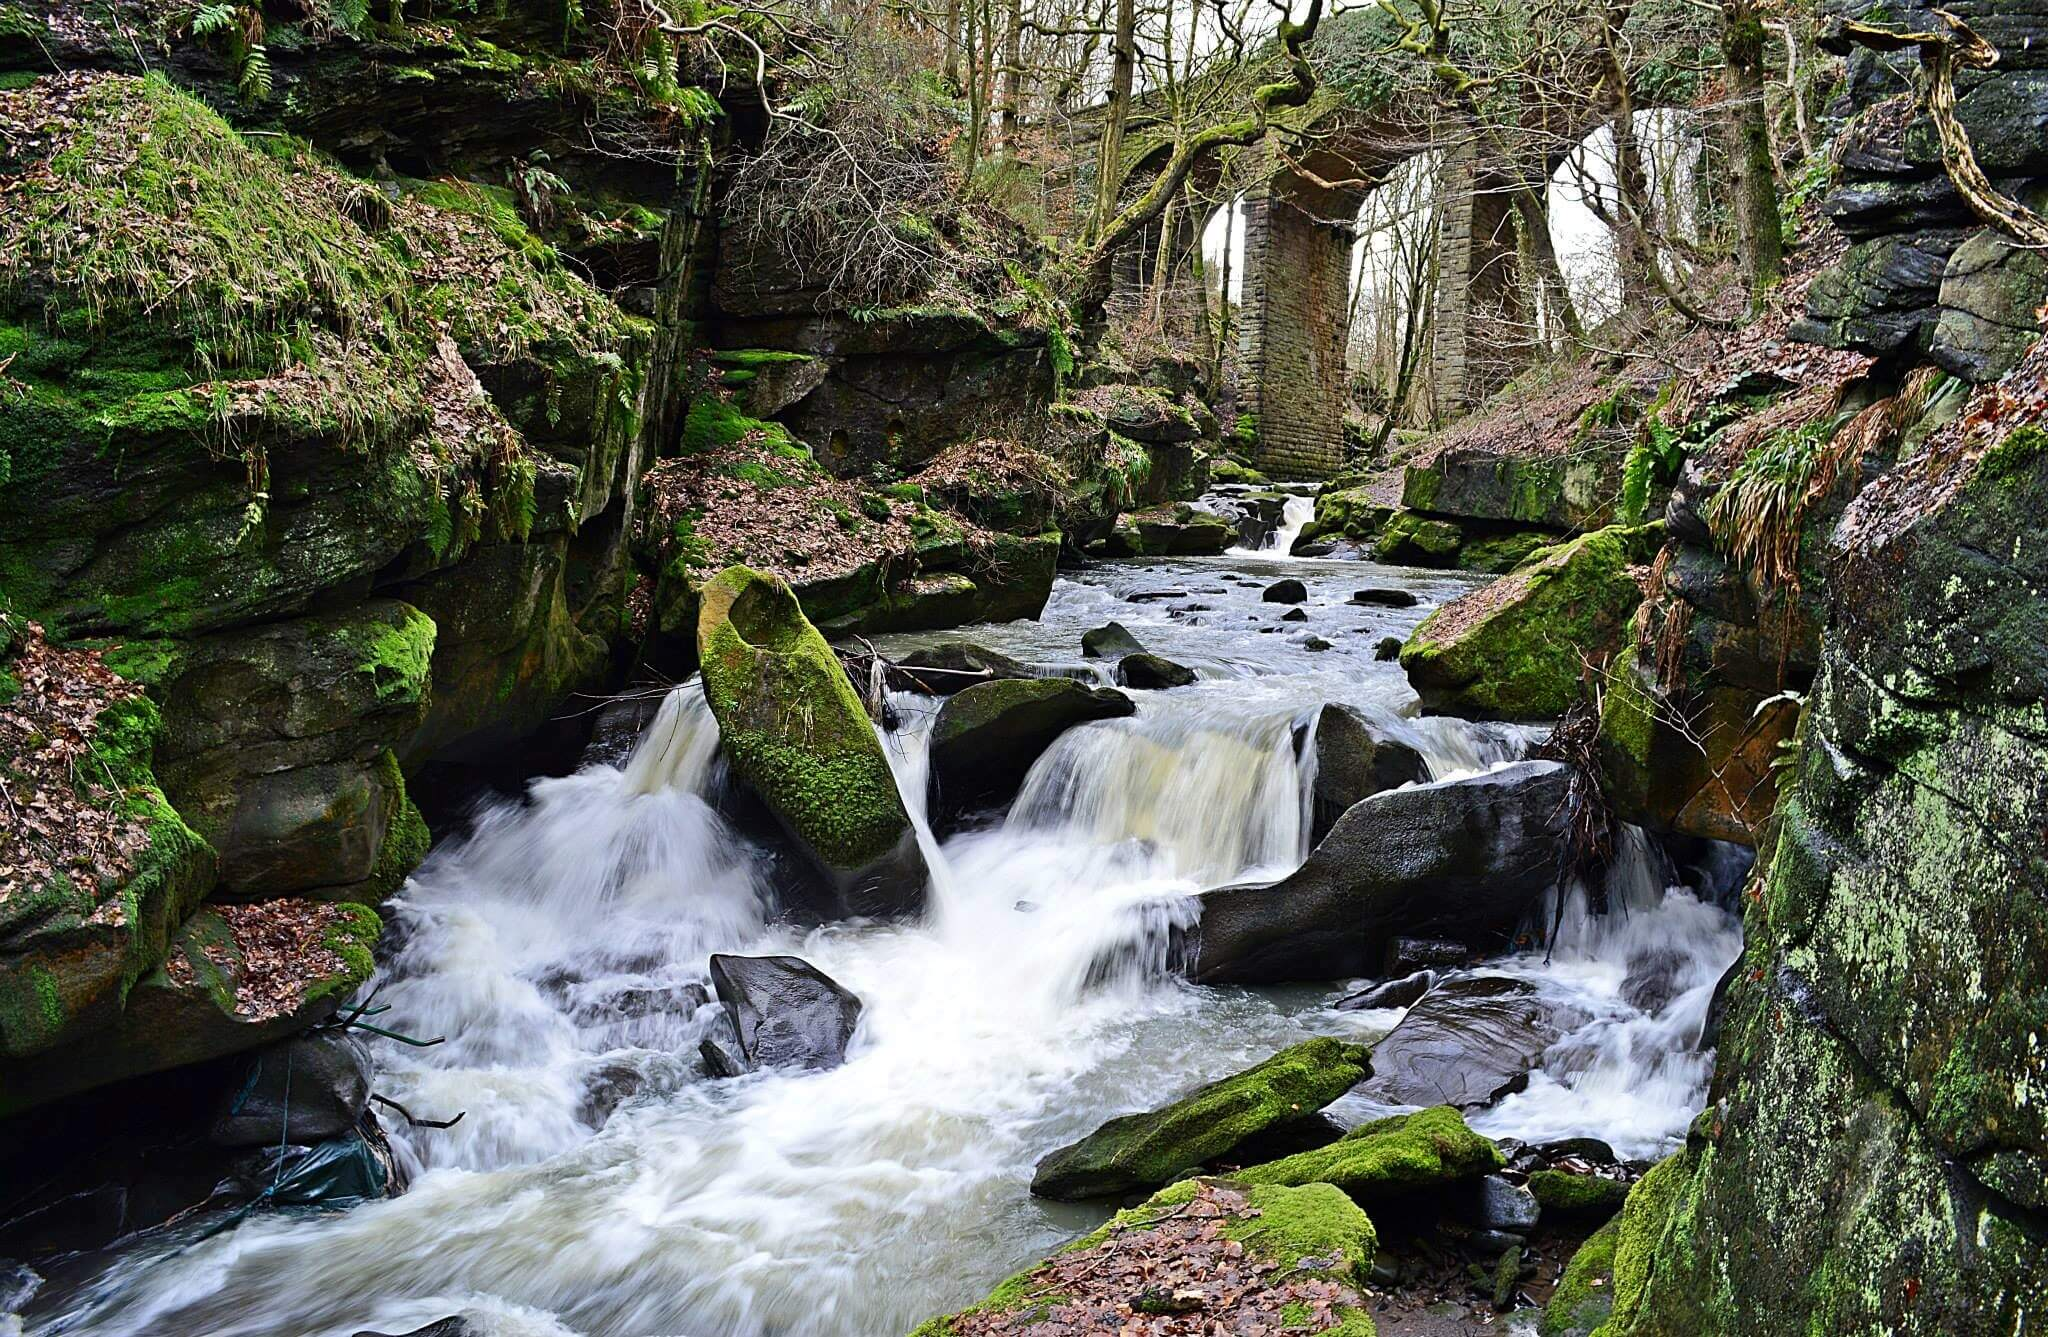 Image of waterfall that can be seen when walking in Rossendale for Visit Rossendale website